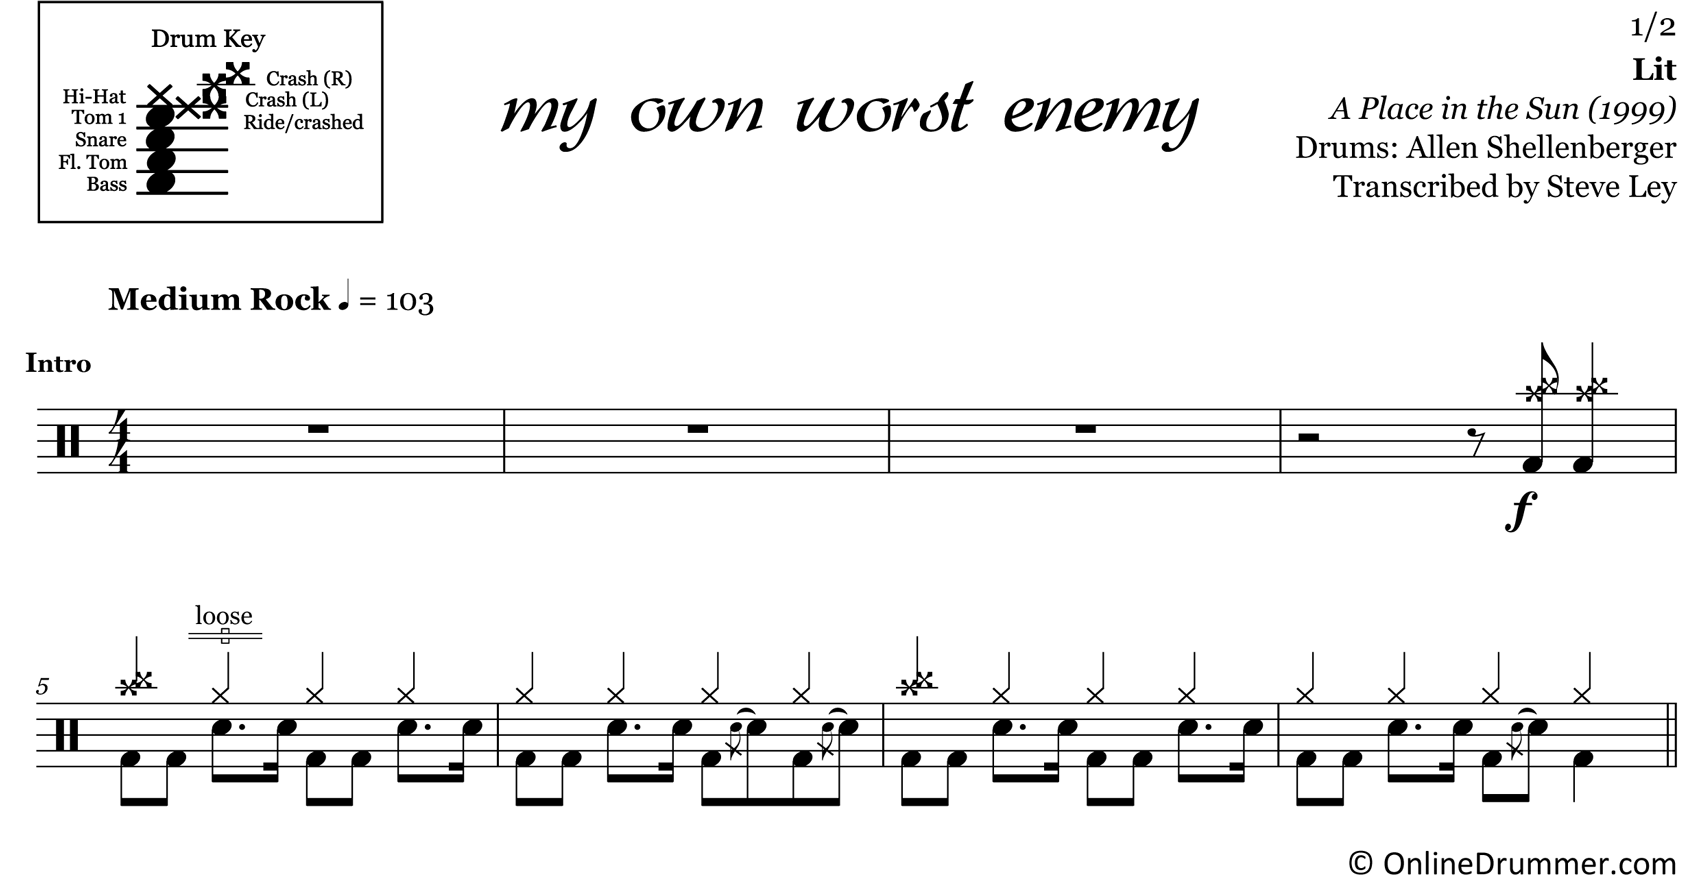 My Own Worst Enemy - Lit - Drum Sheet Music